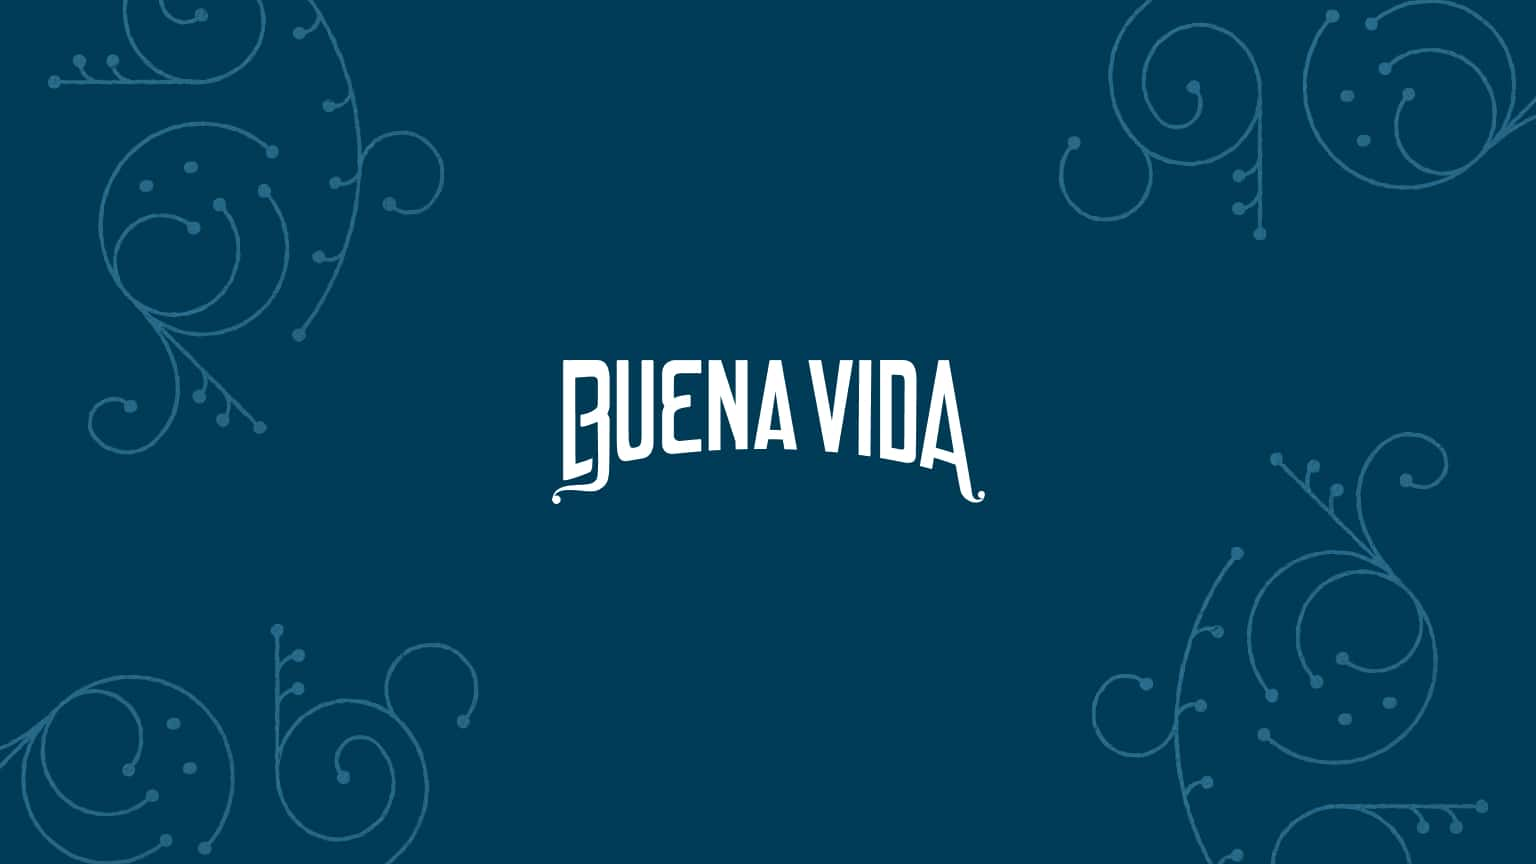 Buena Vida Gift Card Design